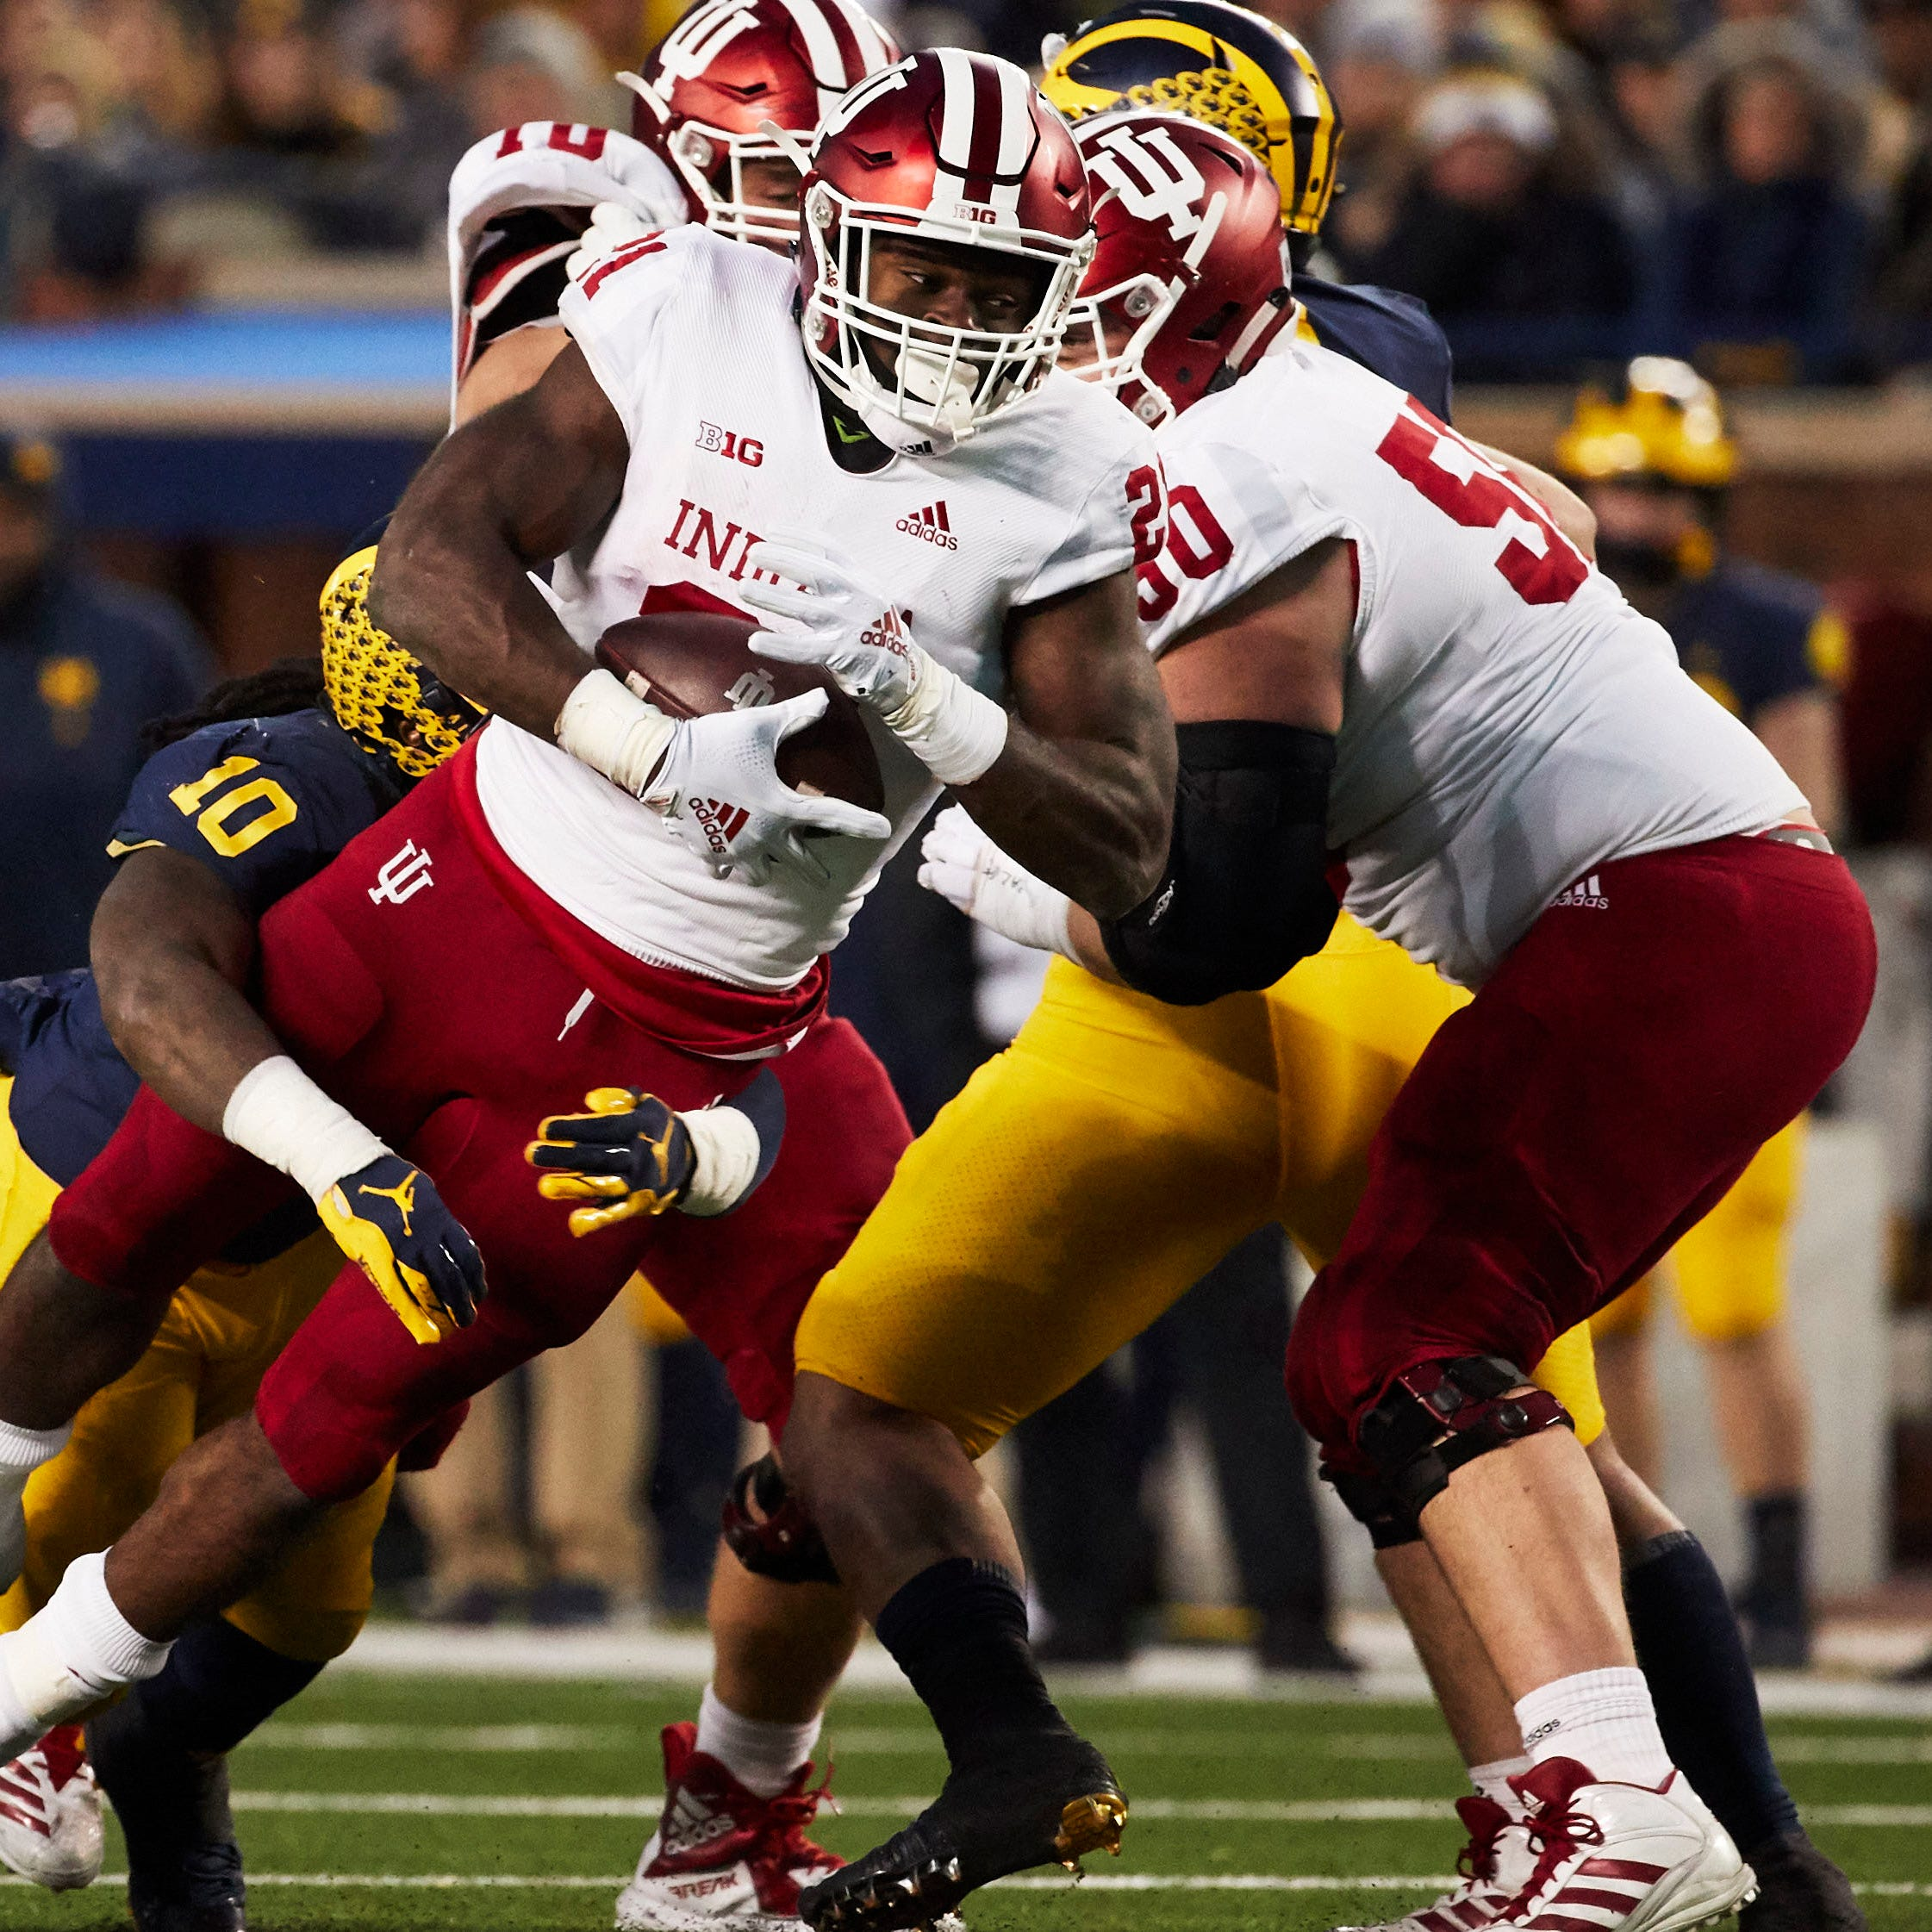 Buzzer breakdown: IU football falls to No. 4 Michigan, will play for bowl bid vs. Purdue